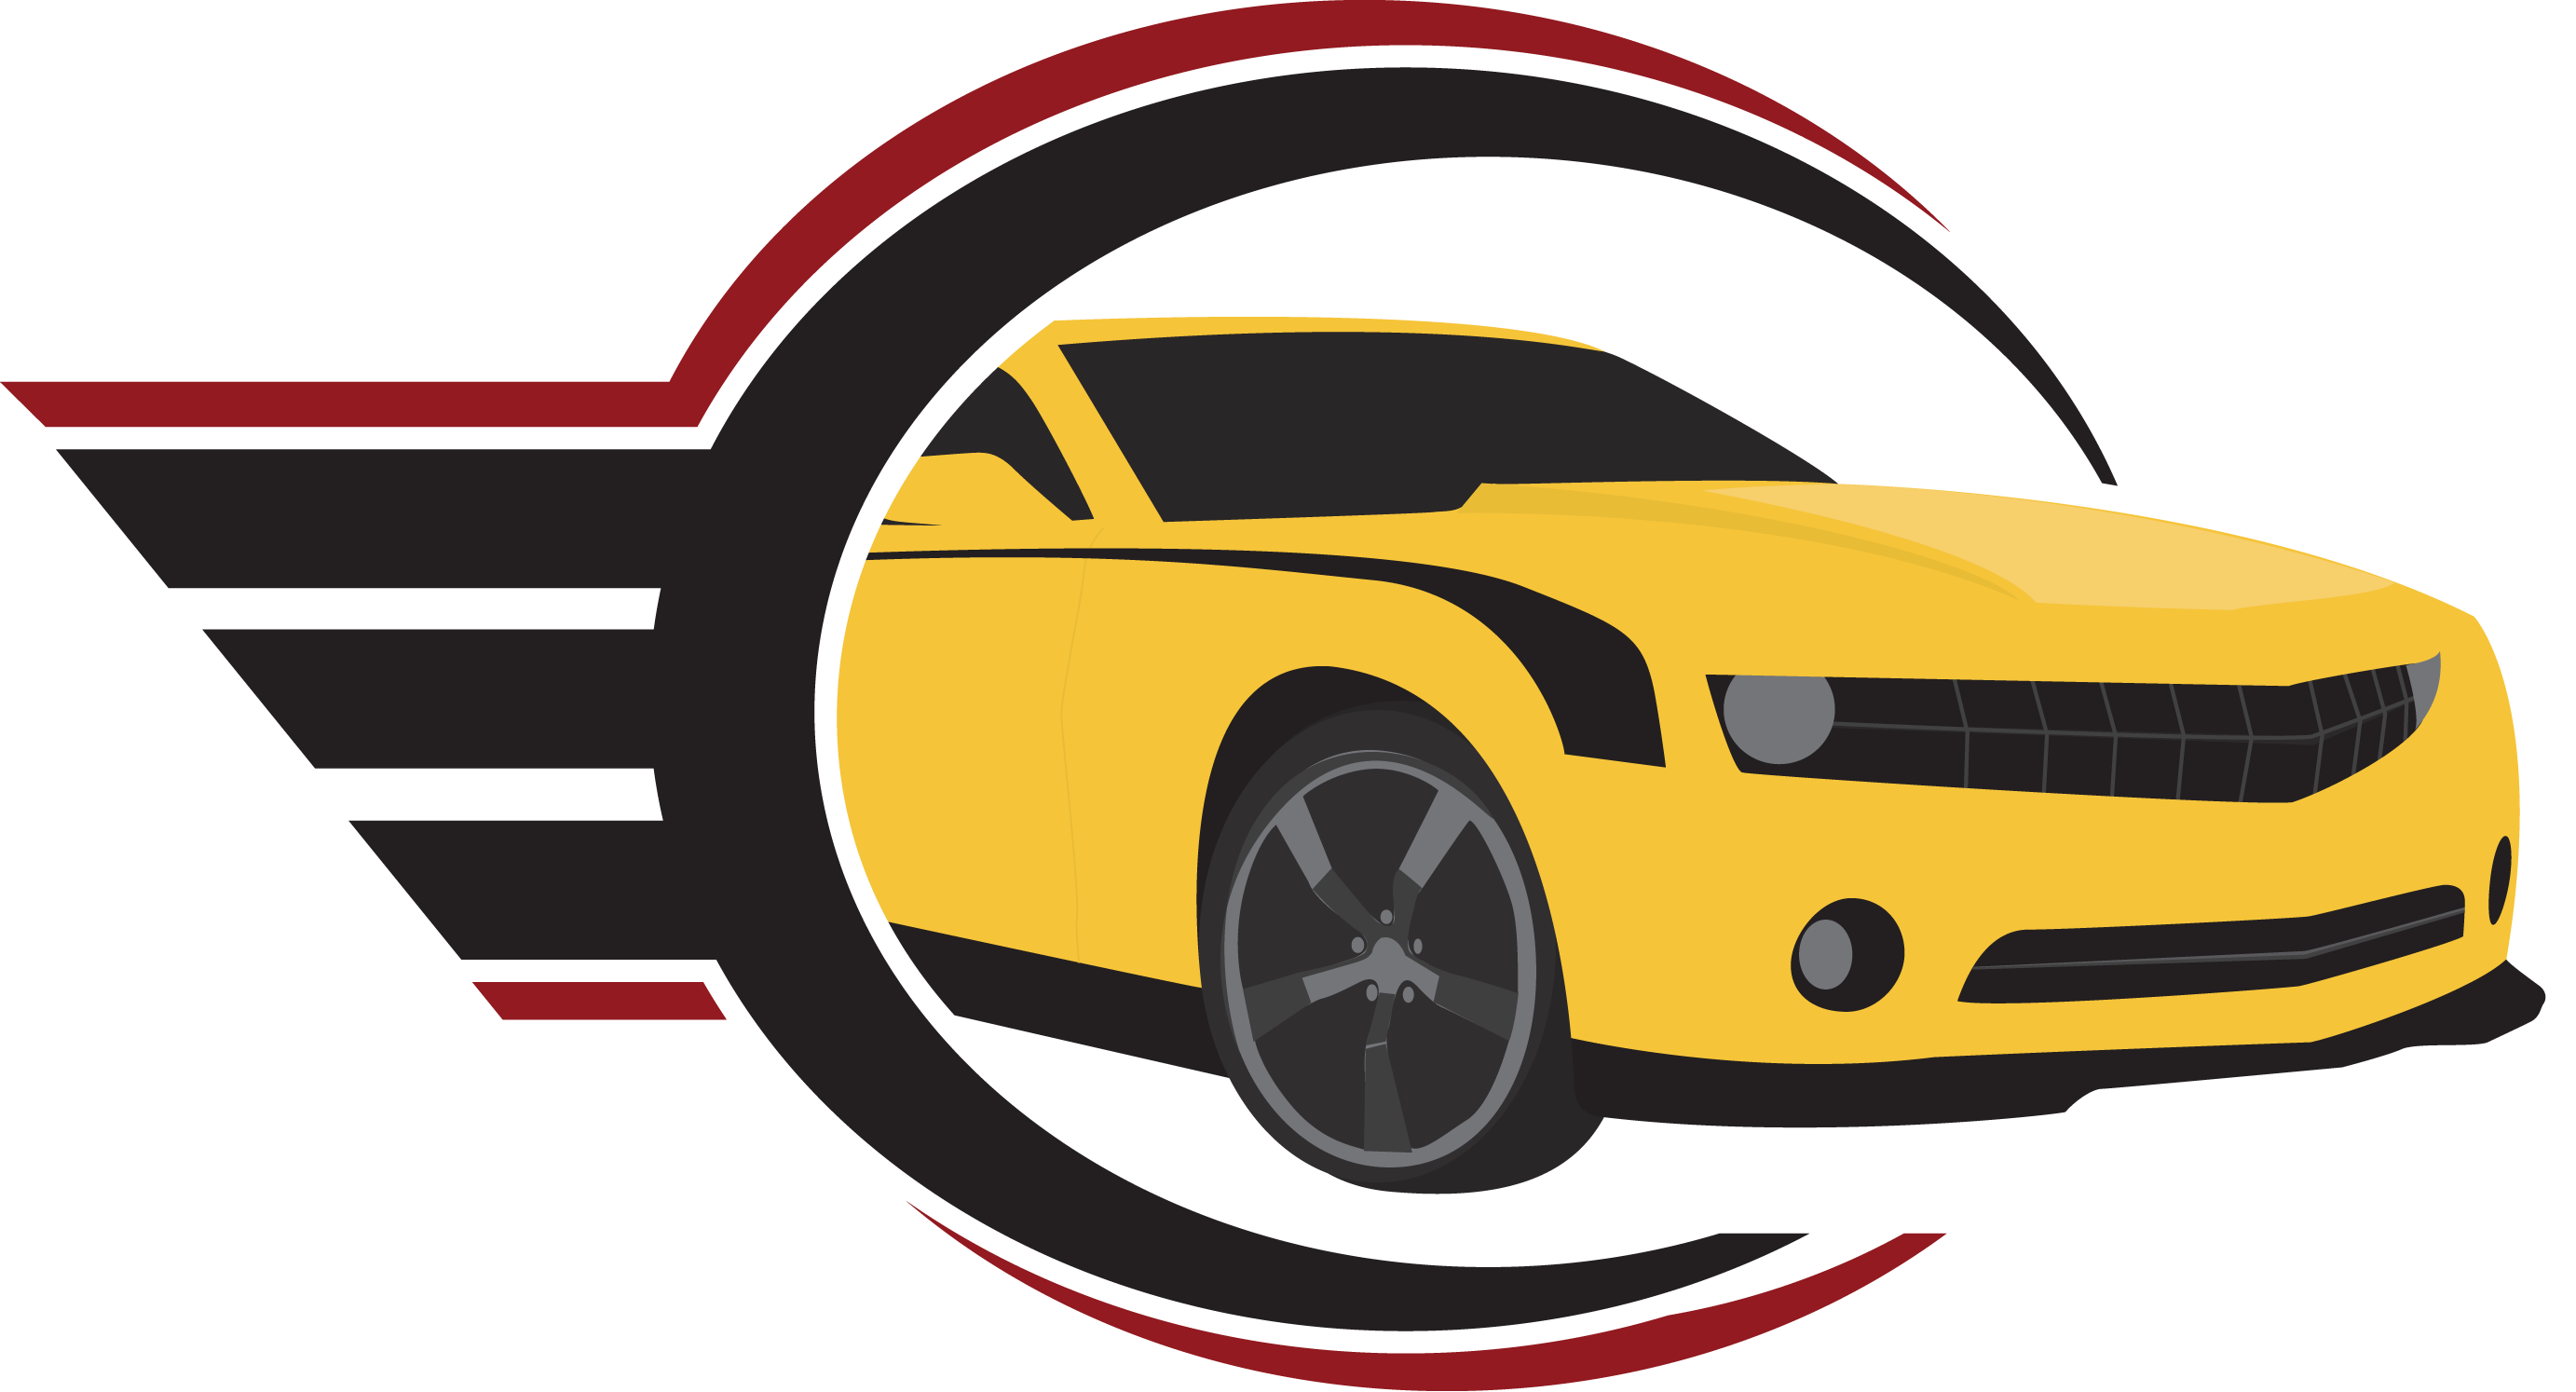 Chevrolet vector camaro. Chevy clipart at getdrawings